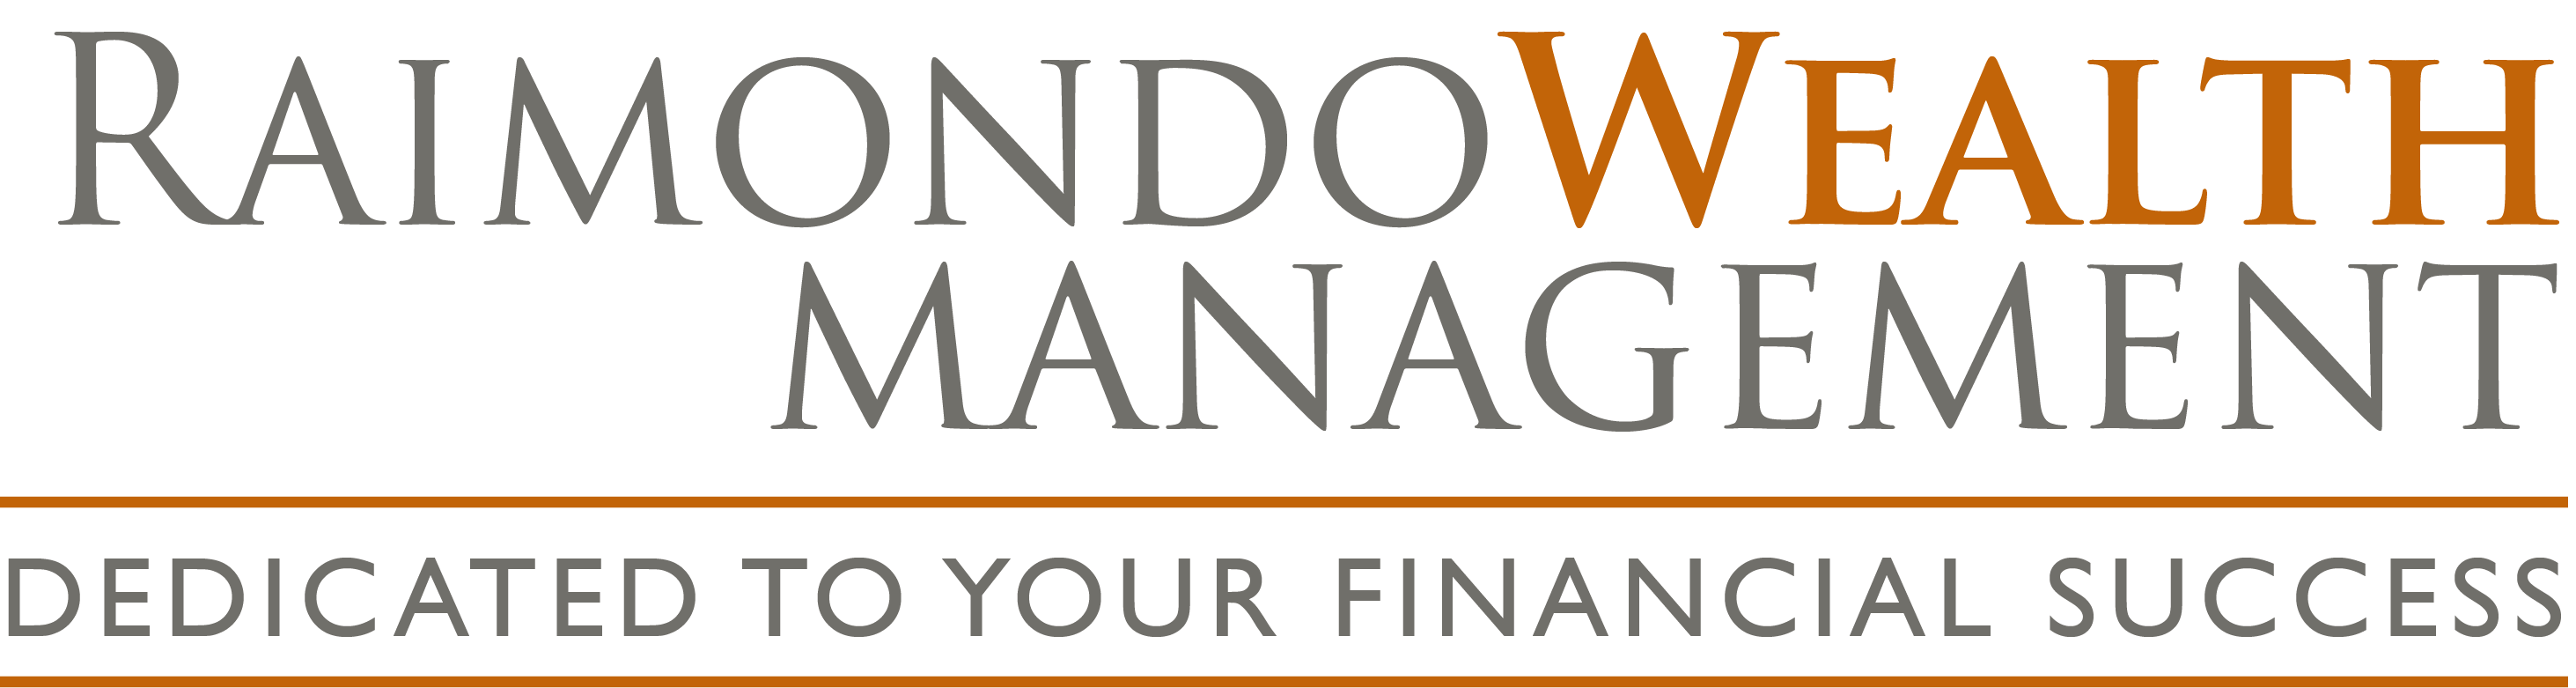 Raimondo Wealth Management